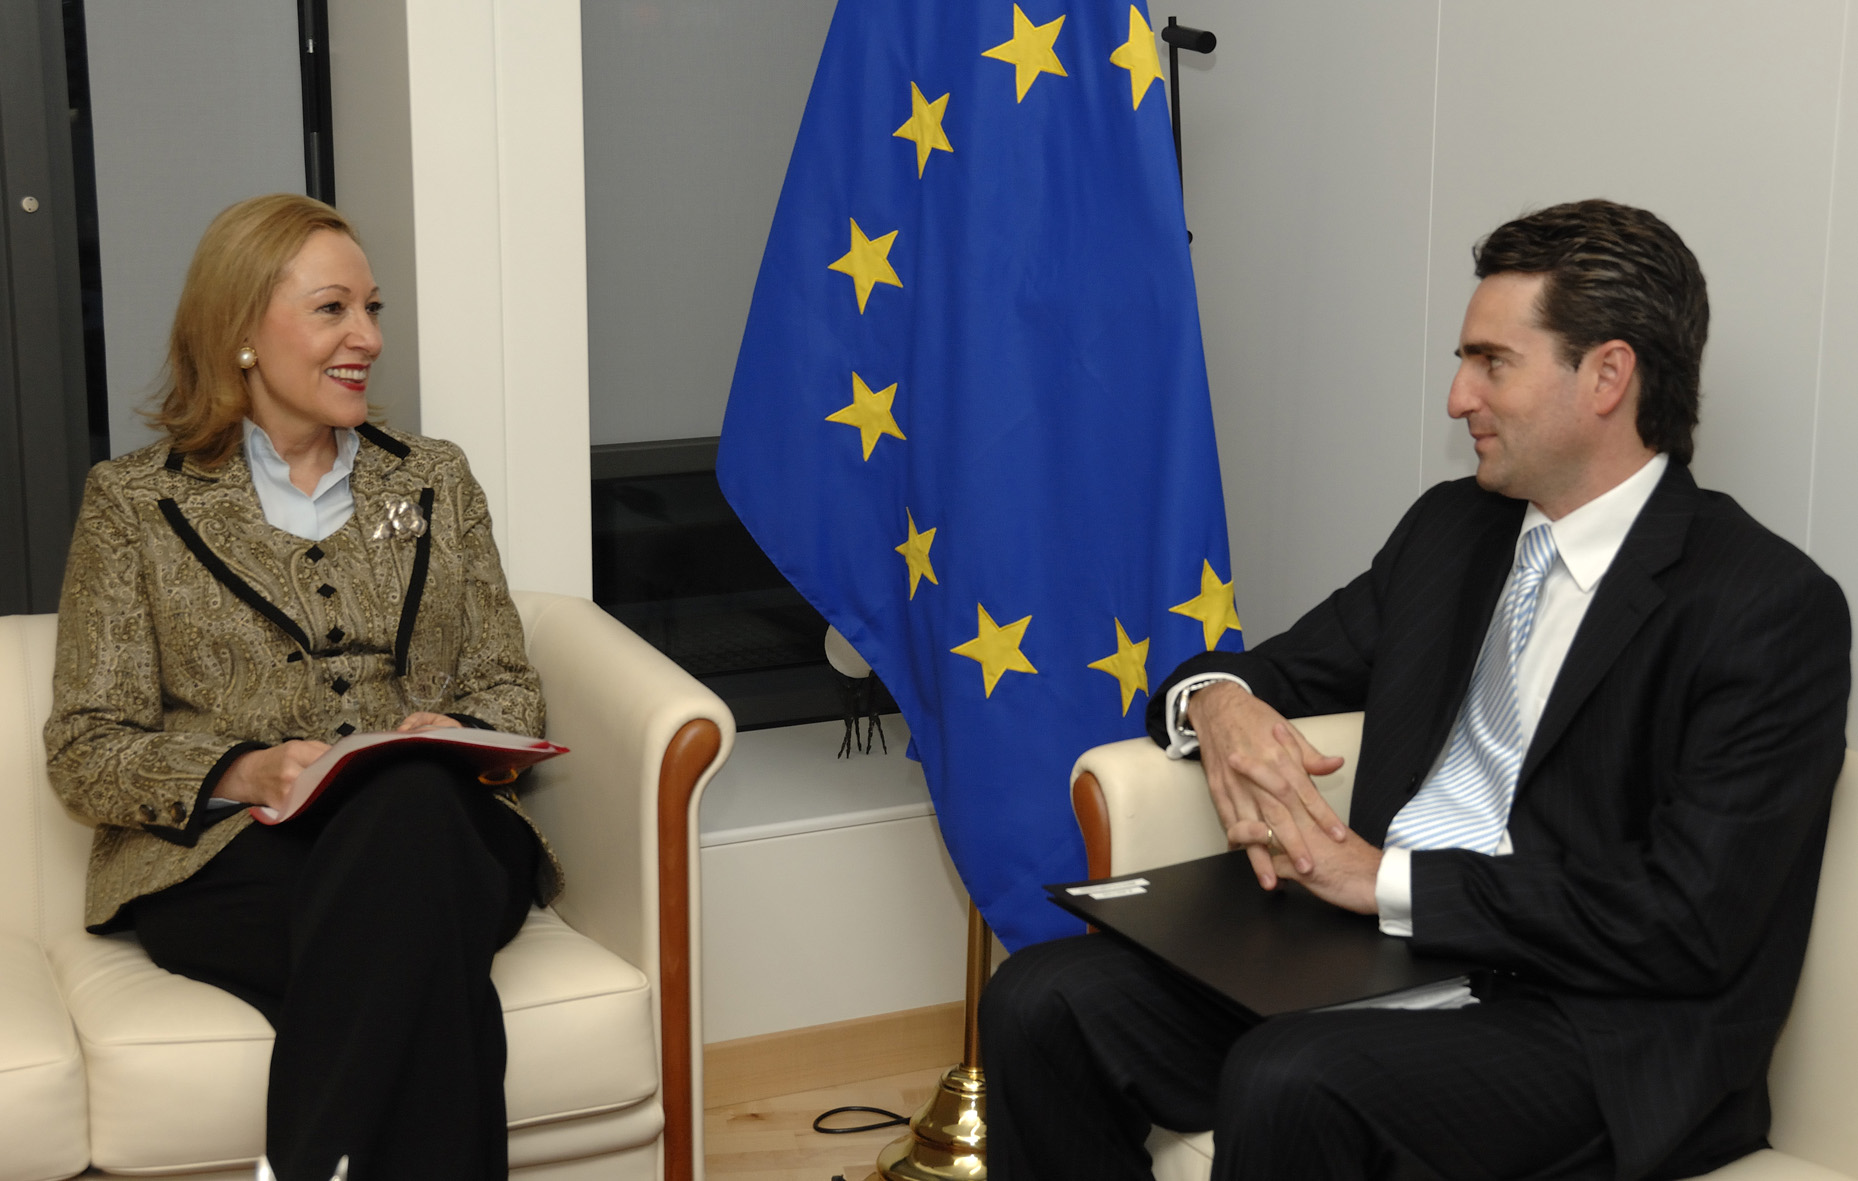 Visit by Bruno Stagno Ugarte, Costa Rican Minister for External Relations and Worship, to the EC